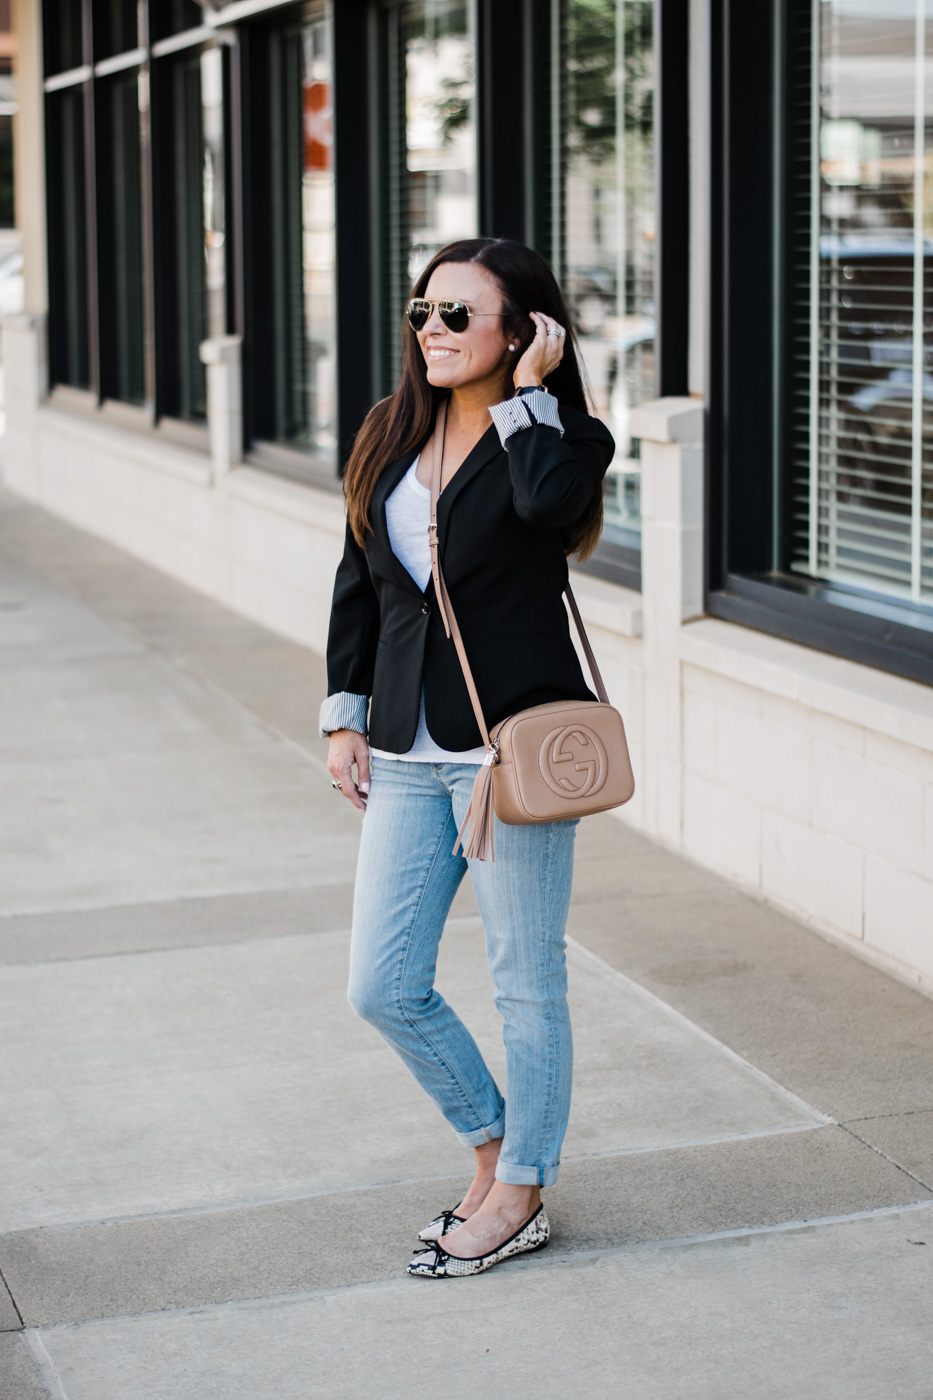 Banana Republic Italian Wool Blazer, Banana Republic Ballet Flat, Gucci Disco Bag, Ray Ban Aviators